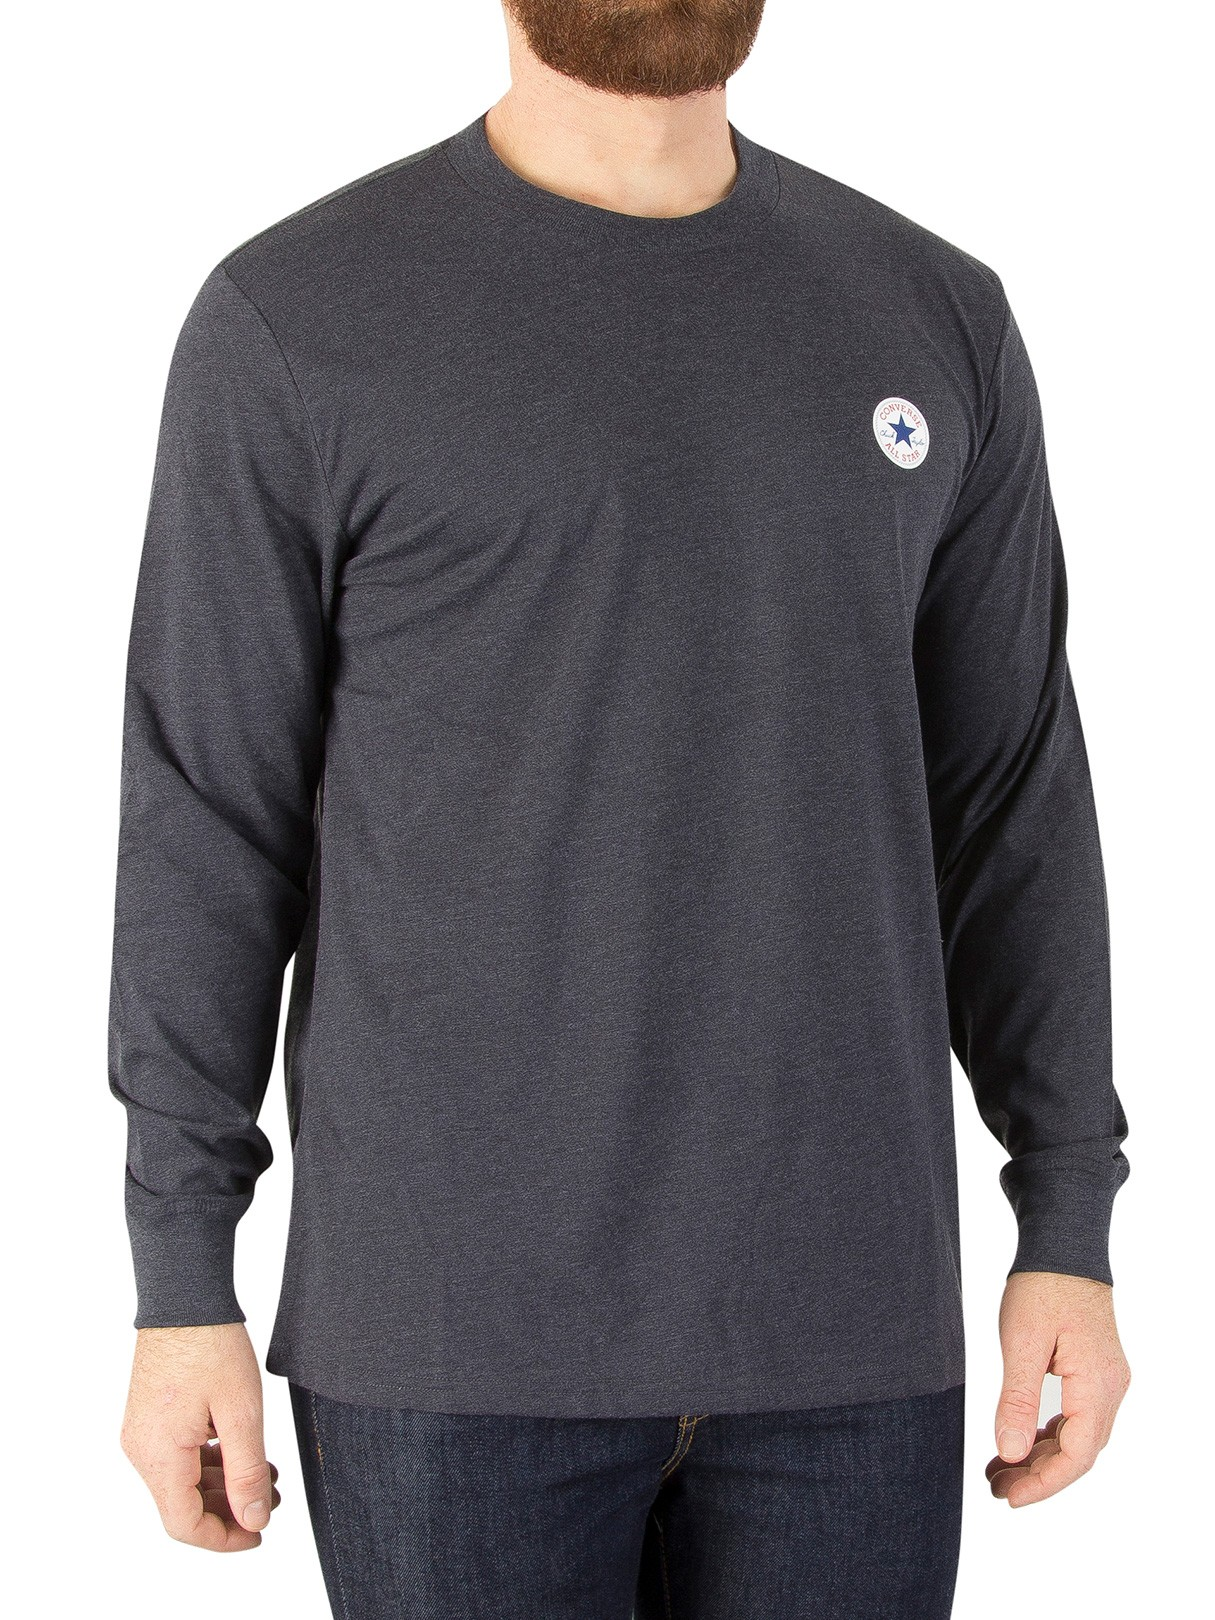 Stand-out.net Converse Dark Obsidian Heather Longsleeved Badge T-Shirt